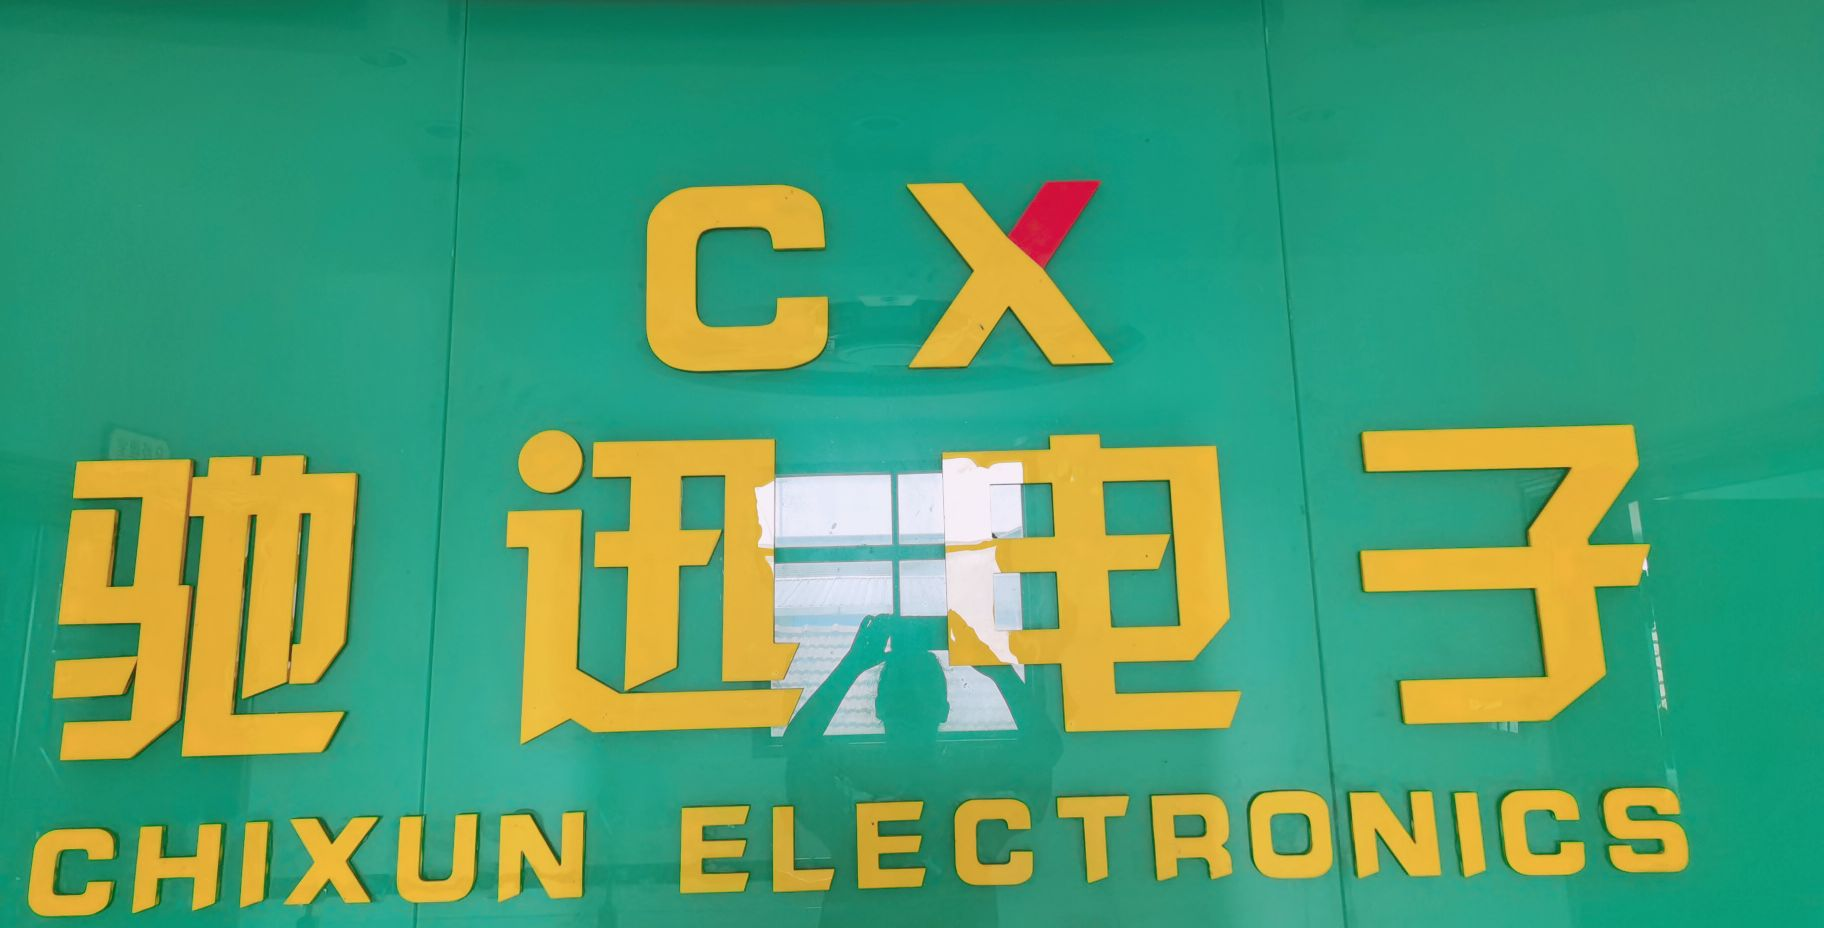 CHANGZHOU CHIXUN ELECTRONIC CO.,LTD